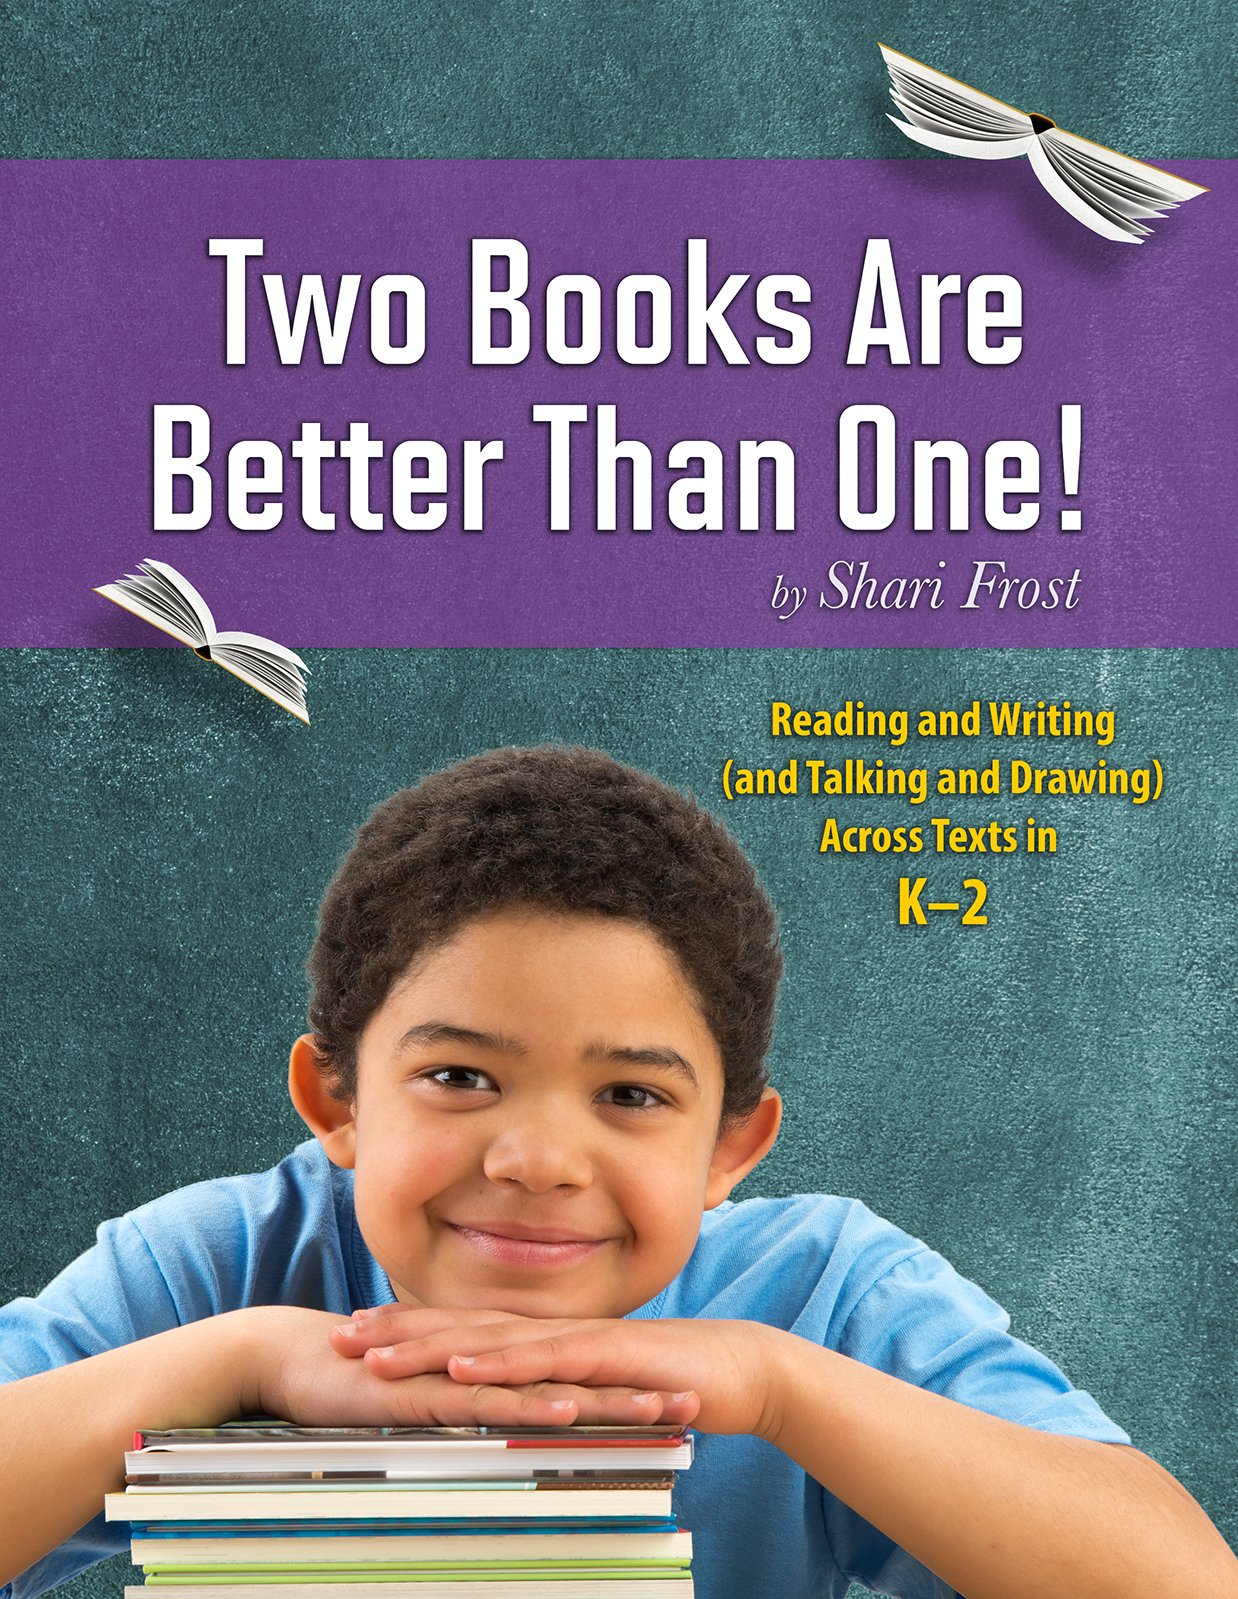 Download Two Books Are Better Than One!: Reading and Writing (and Talking and Drawing) Across Texts in K-2 (Capstone Professional: Maupin House) pdf